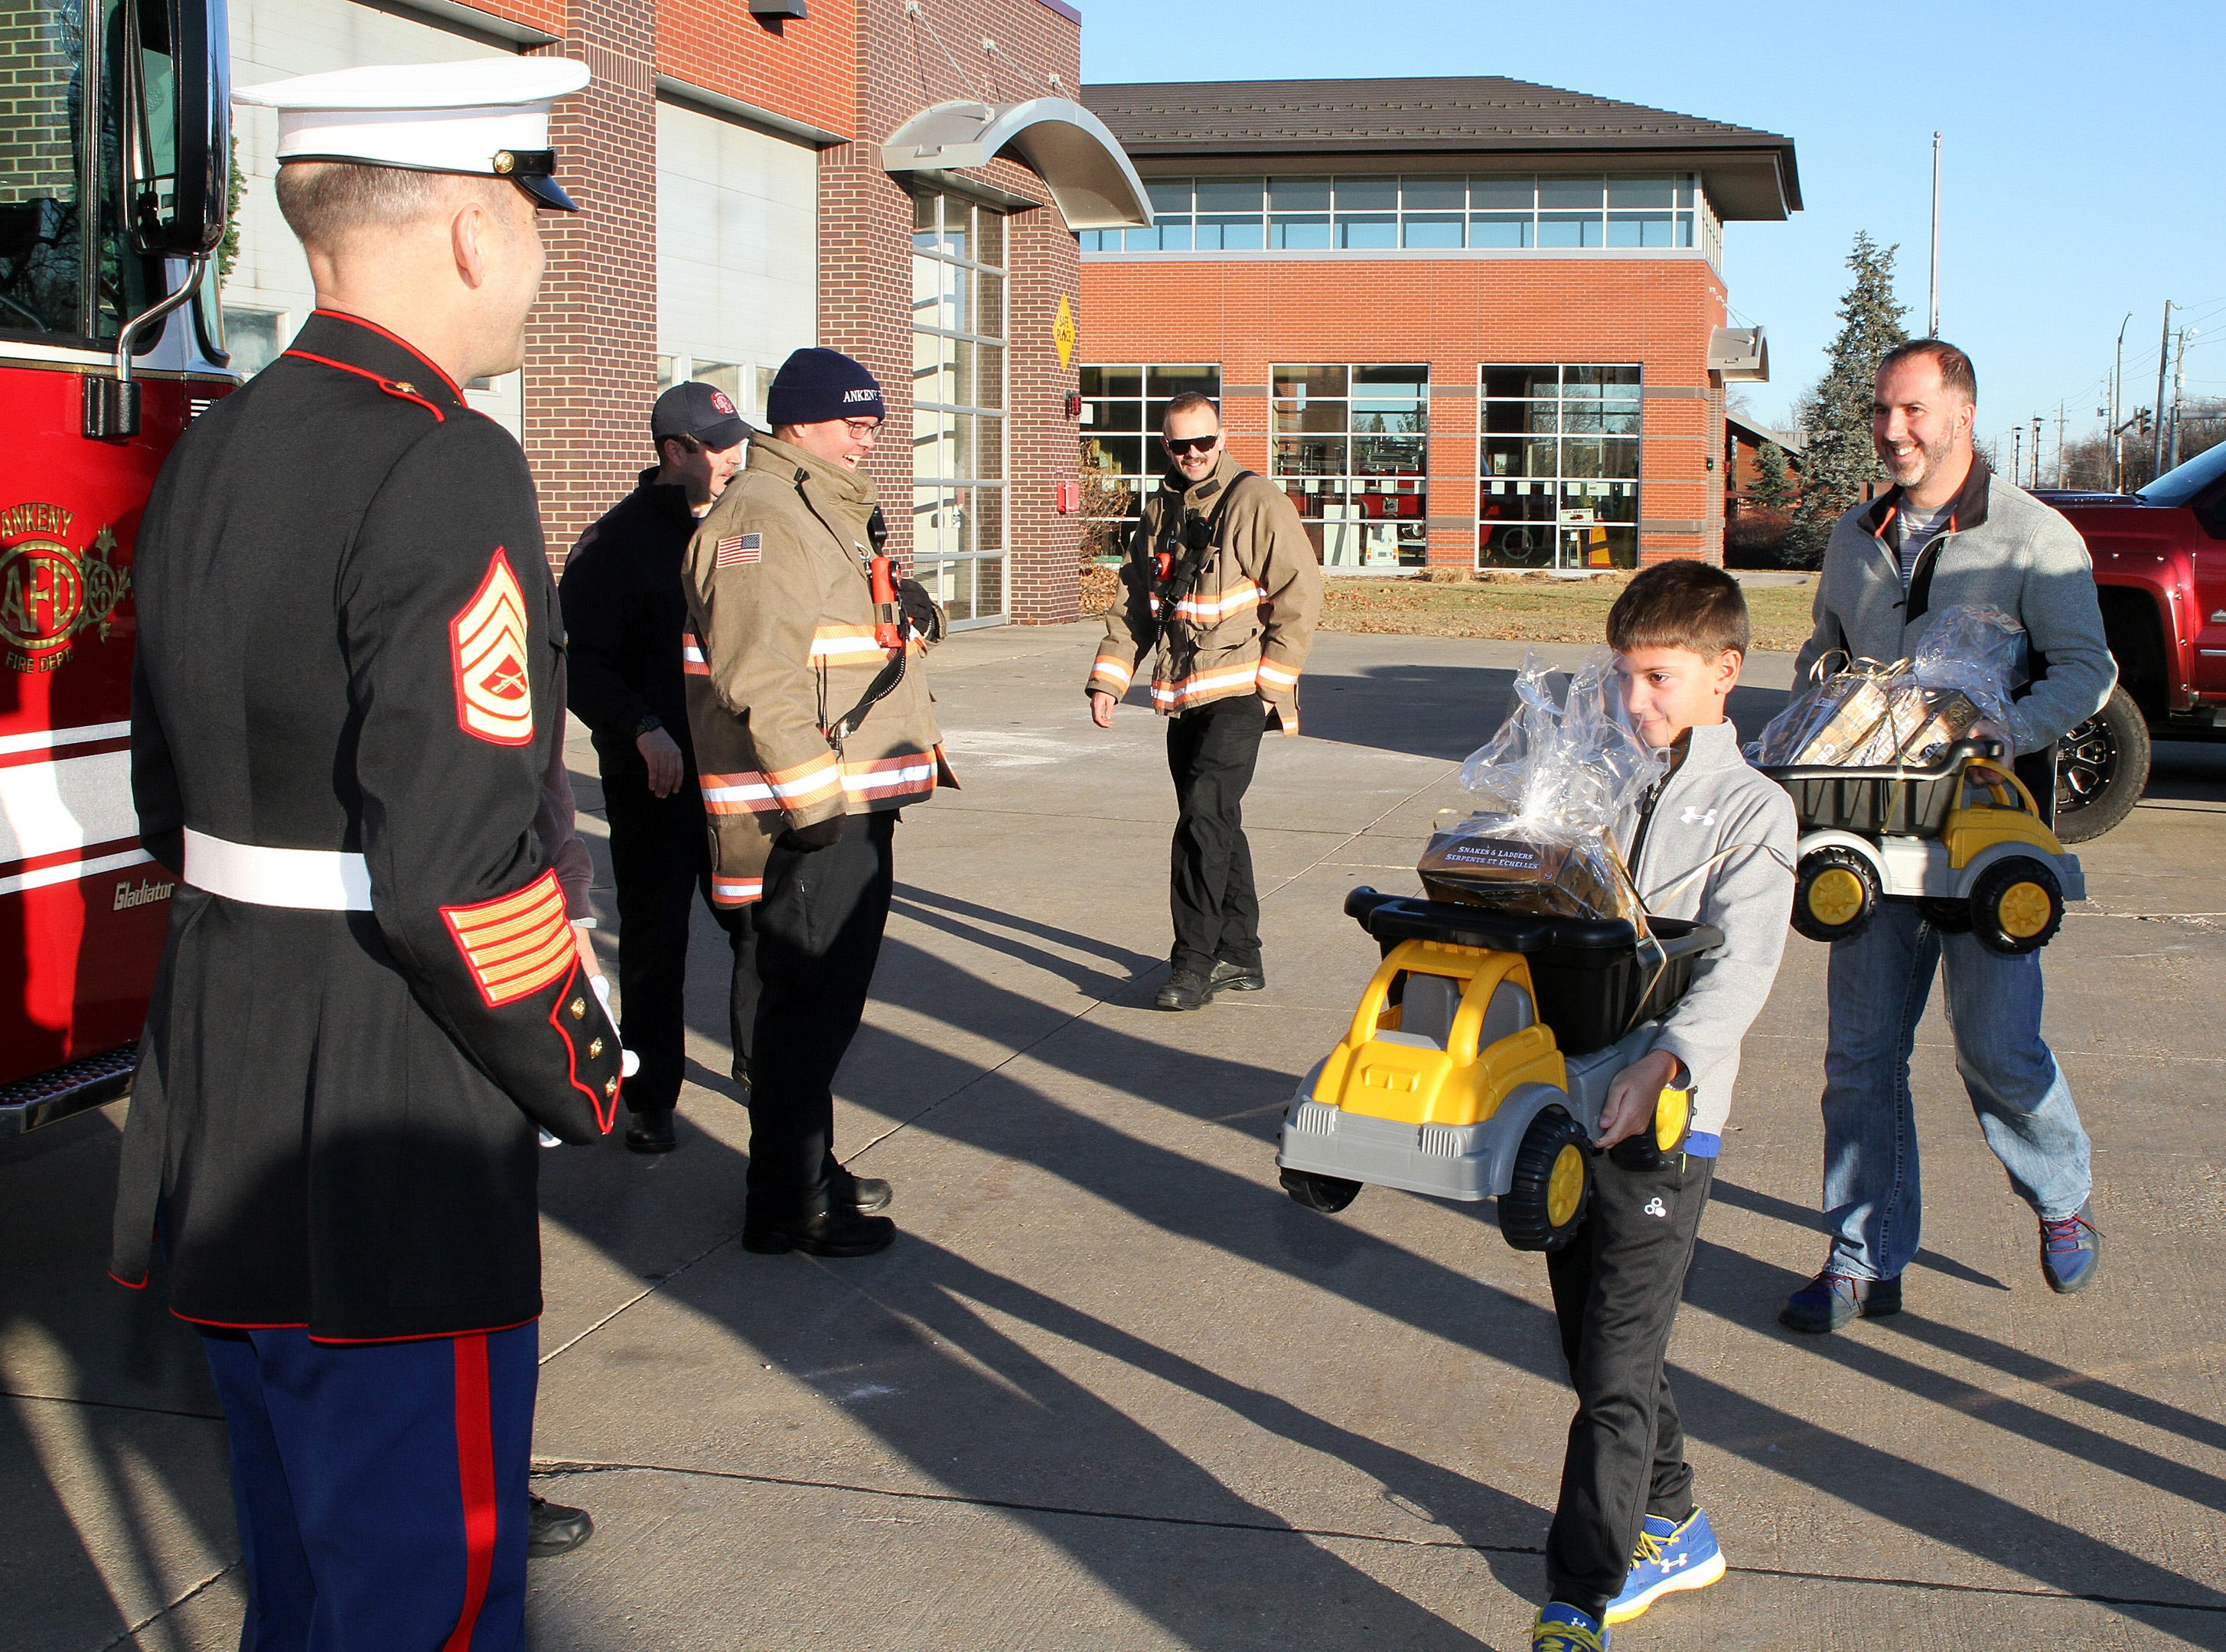 Amel Jusic, 9, of Ankeny delivers a truckload of presents to retired Marine Gunnery Sgt. Mark Amann, current member of the Ankeny Fire Department, as gifts are dropped off at Ankeny's fill the truck day during the U.S. Marine Corps Toys for Tots campaign at the Ankeny Fire Station Headquarters on Sunday, Dec. 16, 2018.